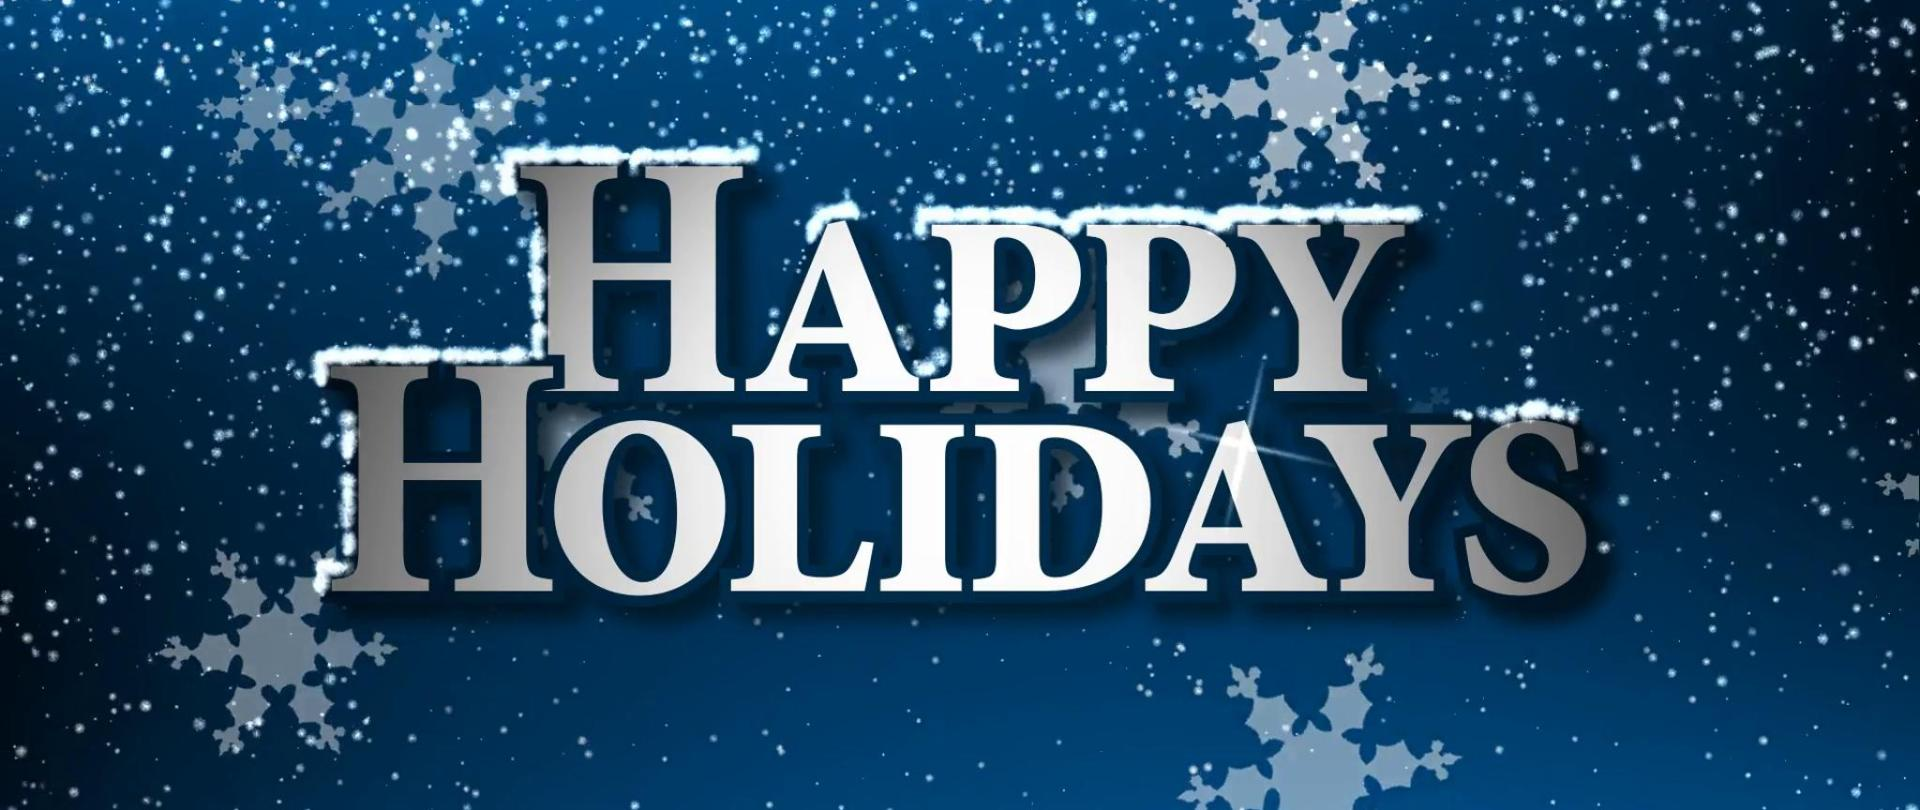 happy-holidays-with-snowflakes-animation-loop_ndpmhkl3x__F0000.png